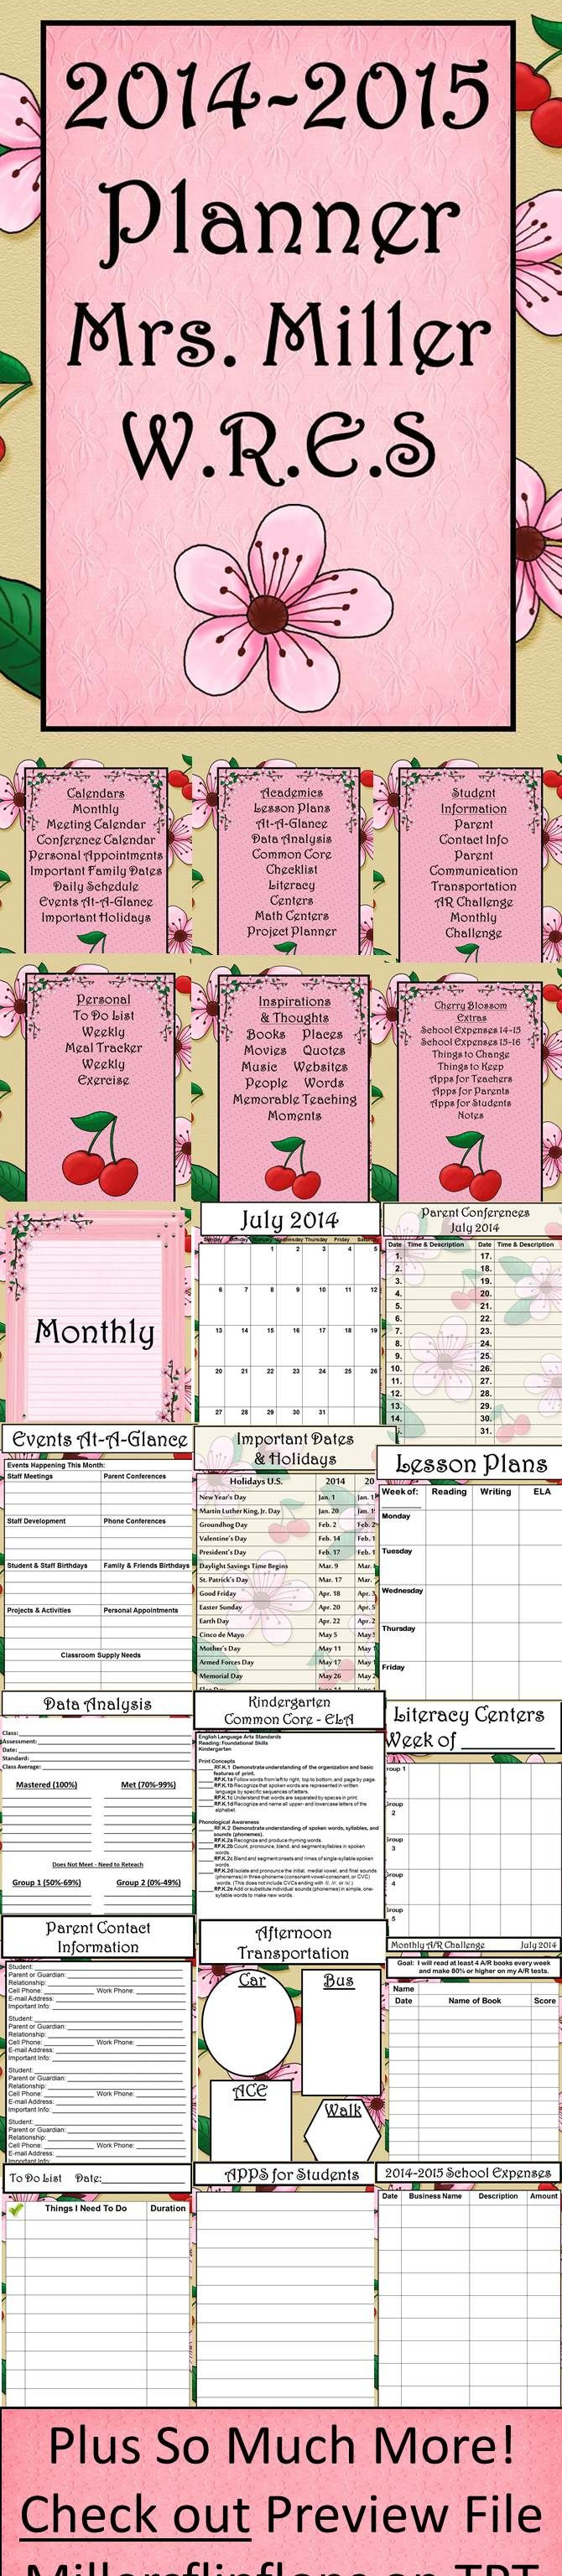 BRAND NEW DESIGN - Ultimate Teacher Planner 2014-2015, Beautiful Cherry Blossom Theme. Everything a Teacher Could Want All in One Place. This 281-page ULTIMATE TEACHER PLANNER is a teacher's dream come true! Through many hours of preparation, I am now offering this great FULLY EDITABLE organizational tool to teachers worldwide. Lots of choices to make this planner truly work for you, all in one place! Too many things to list! Go check it out! Miller's Flip Flops